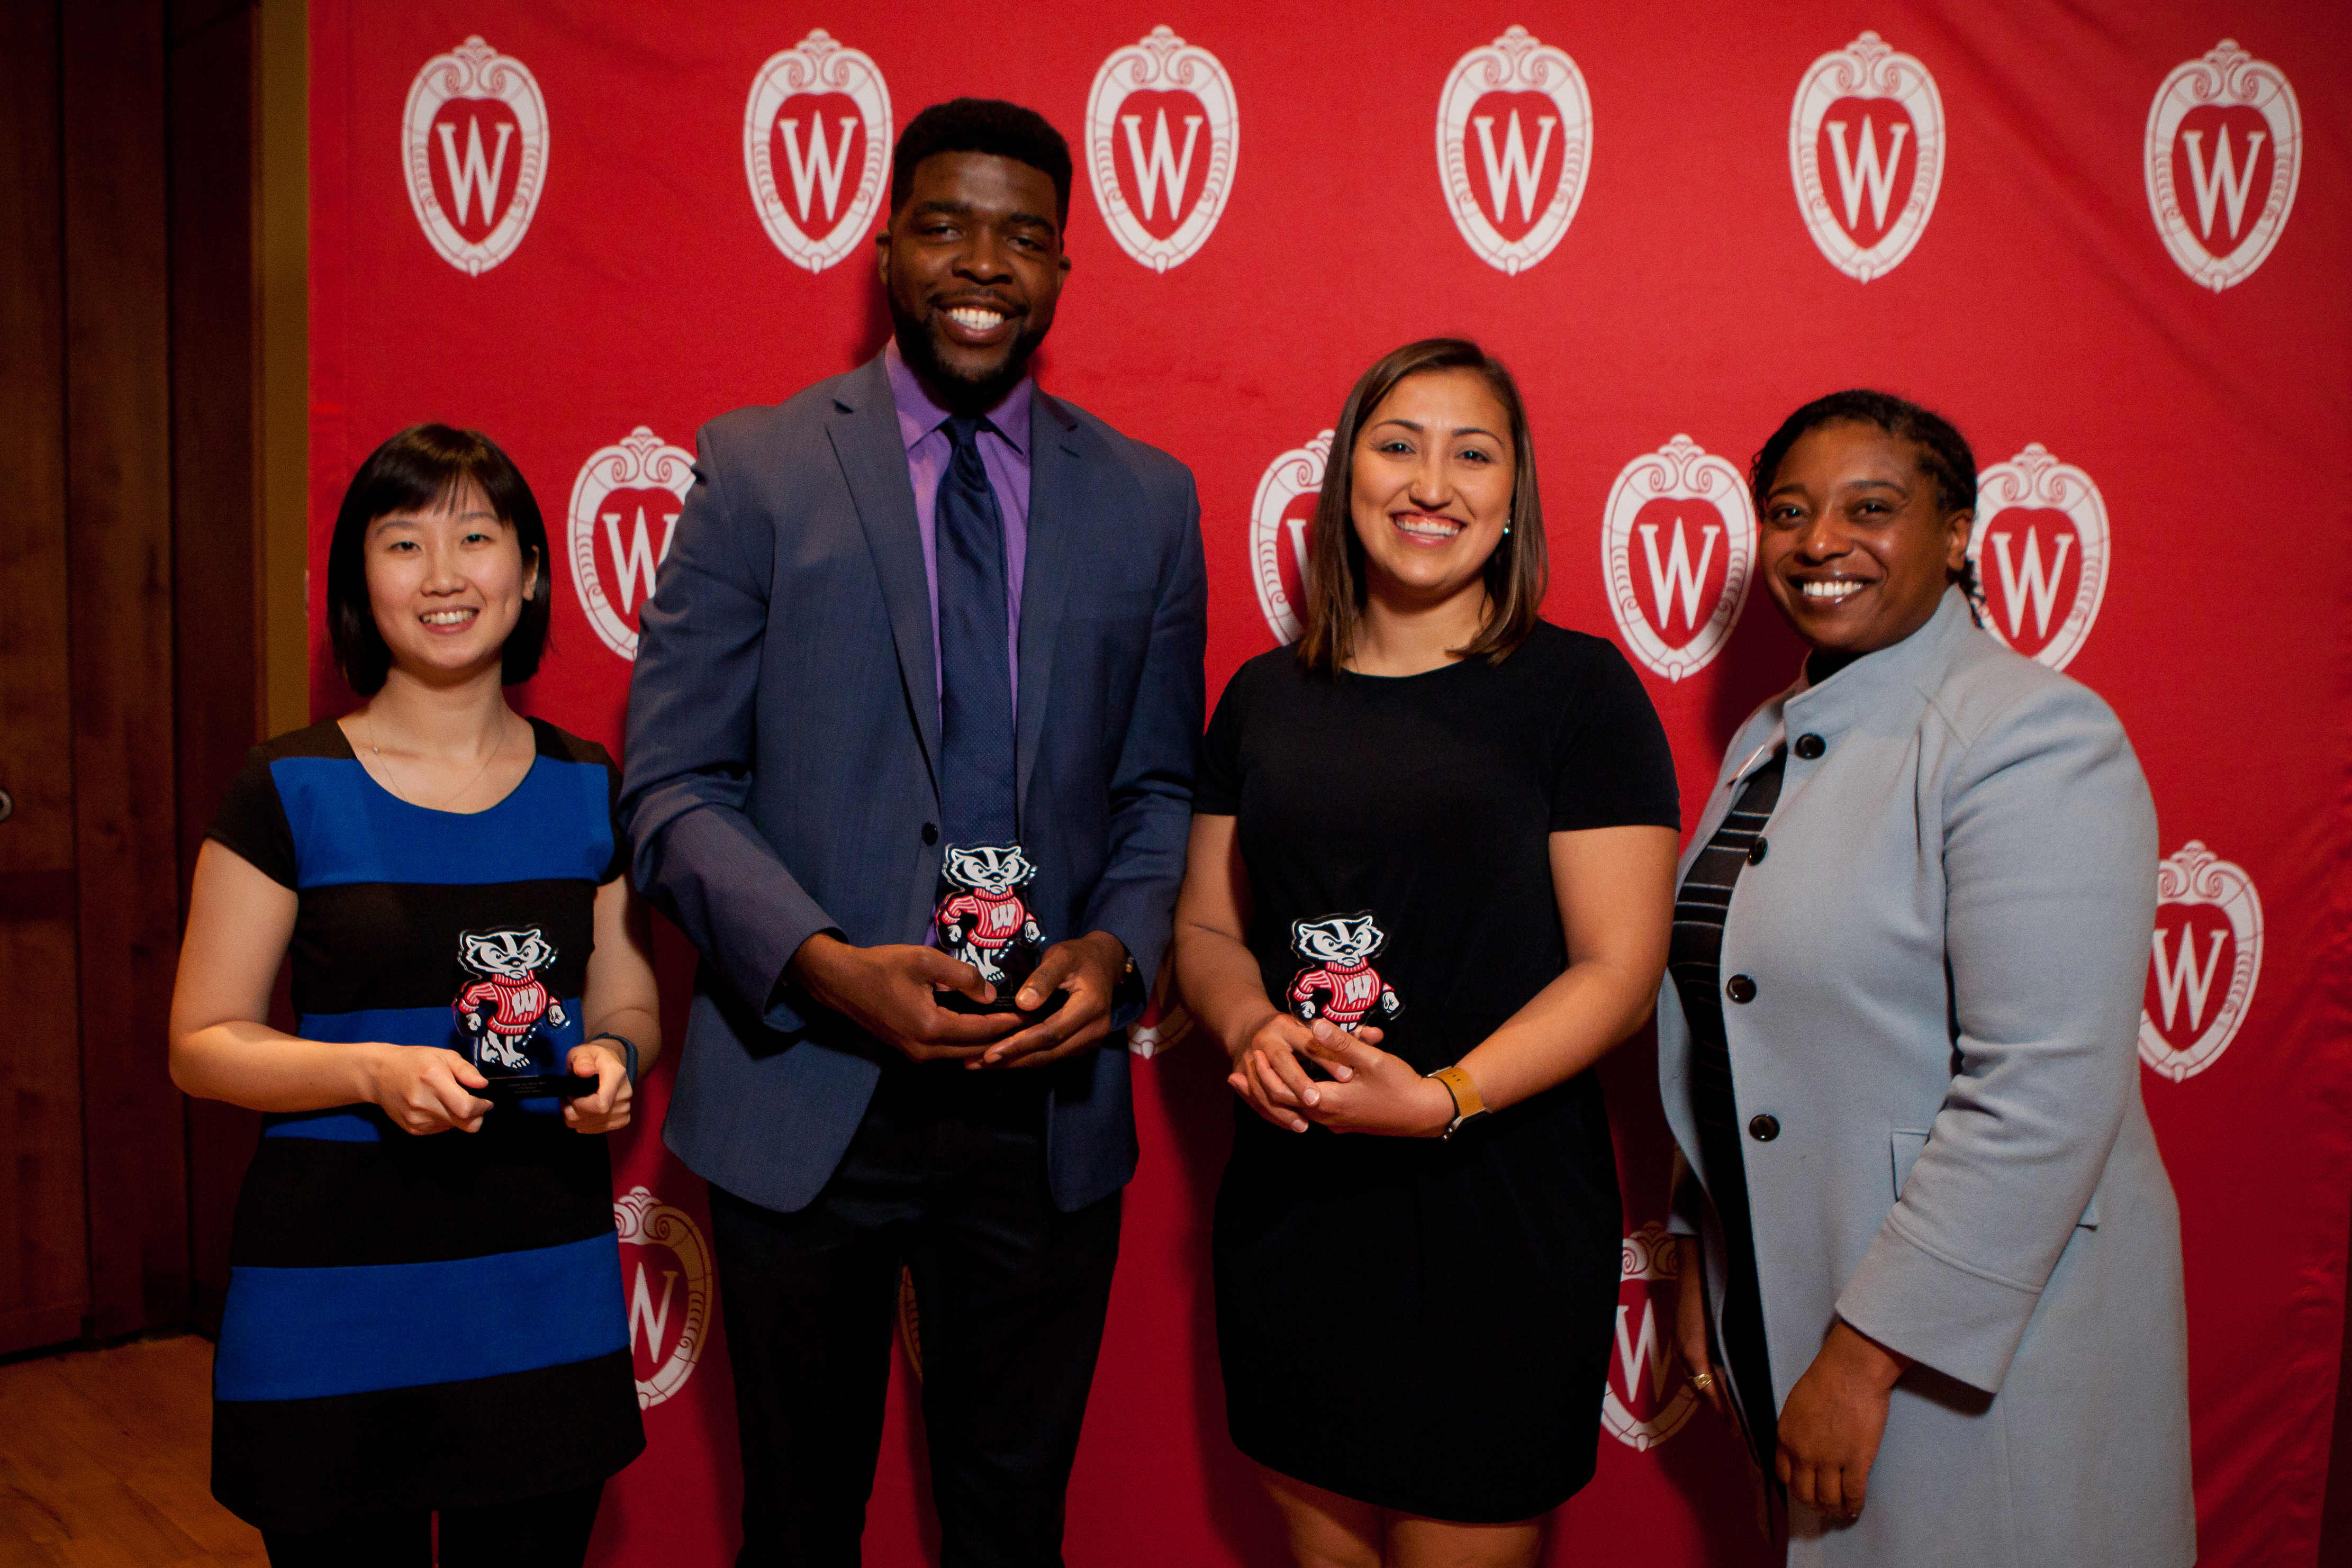 2018 Peer Mentor Award Winners Liza Chang, Folagbayi Arowolo, and Amelia Cuarenta; and Dr. LaRuth McAfee, assistant dean in the Graduate School